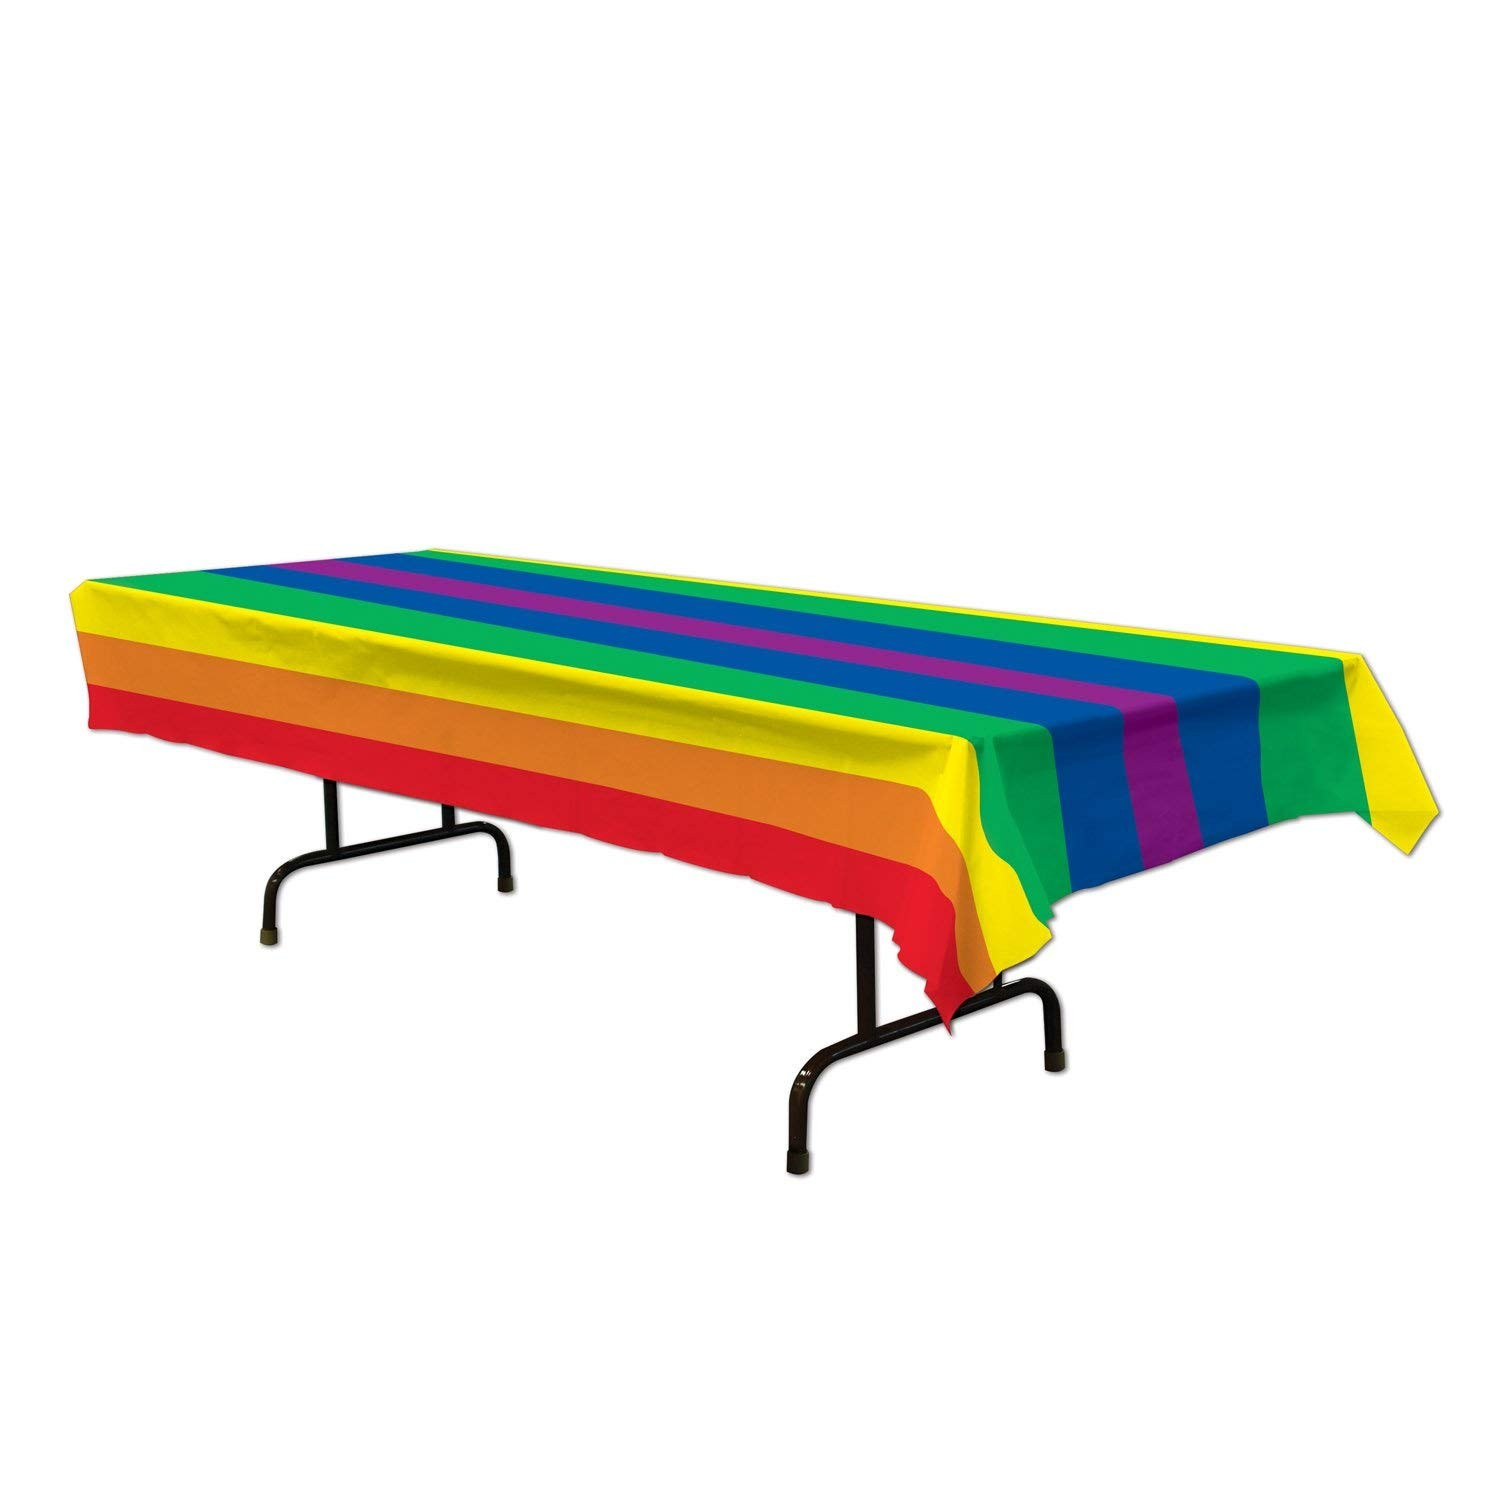 Plastic Covers For Outdoor Furniture